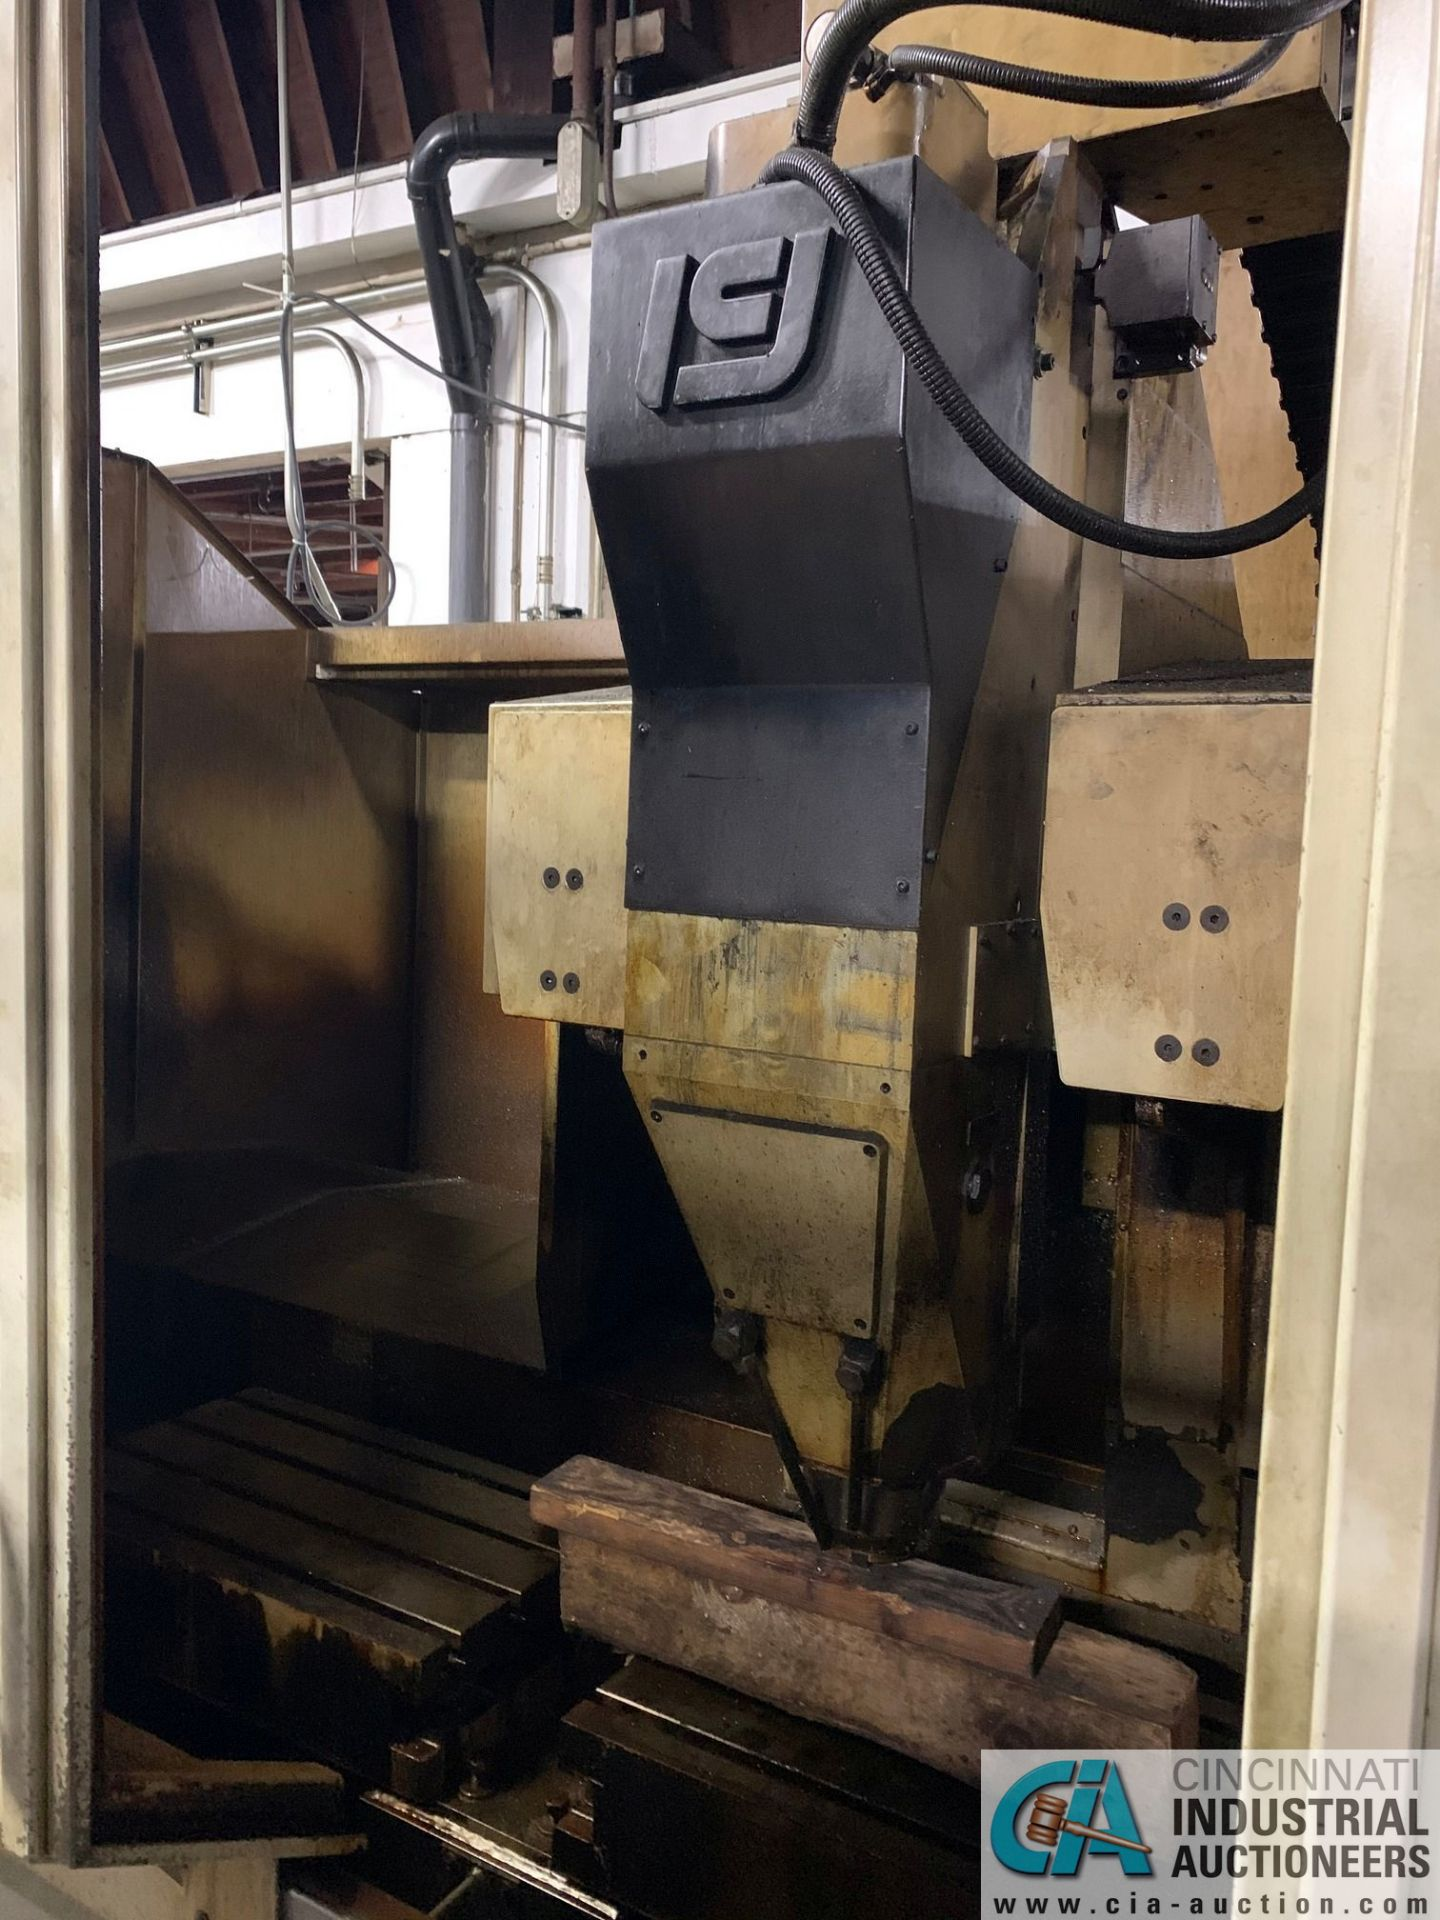 MONARCH UNISIGN TYPE UNIVERS 4 ZONALL 4 CNC VERTICAL MACHINING CENTER; S/N 99Z402, NO. 4292, - Image 2 of 11